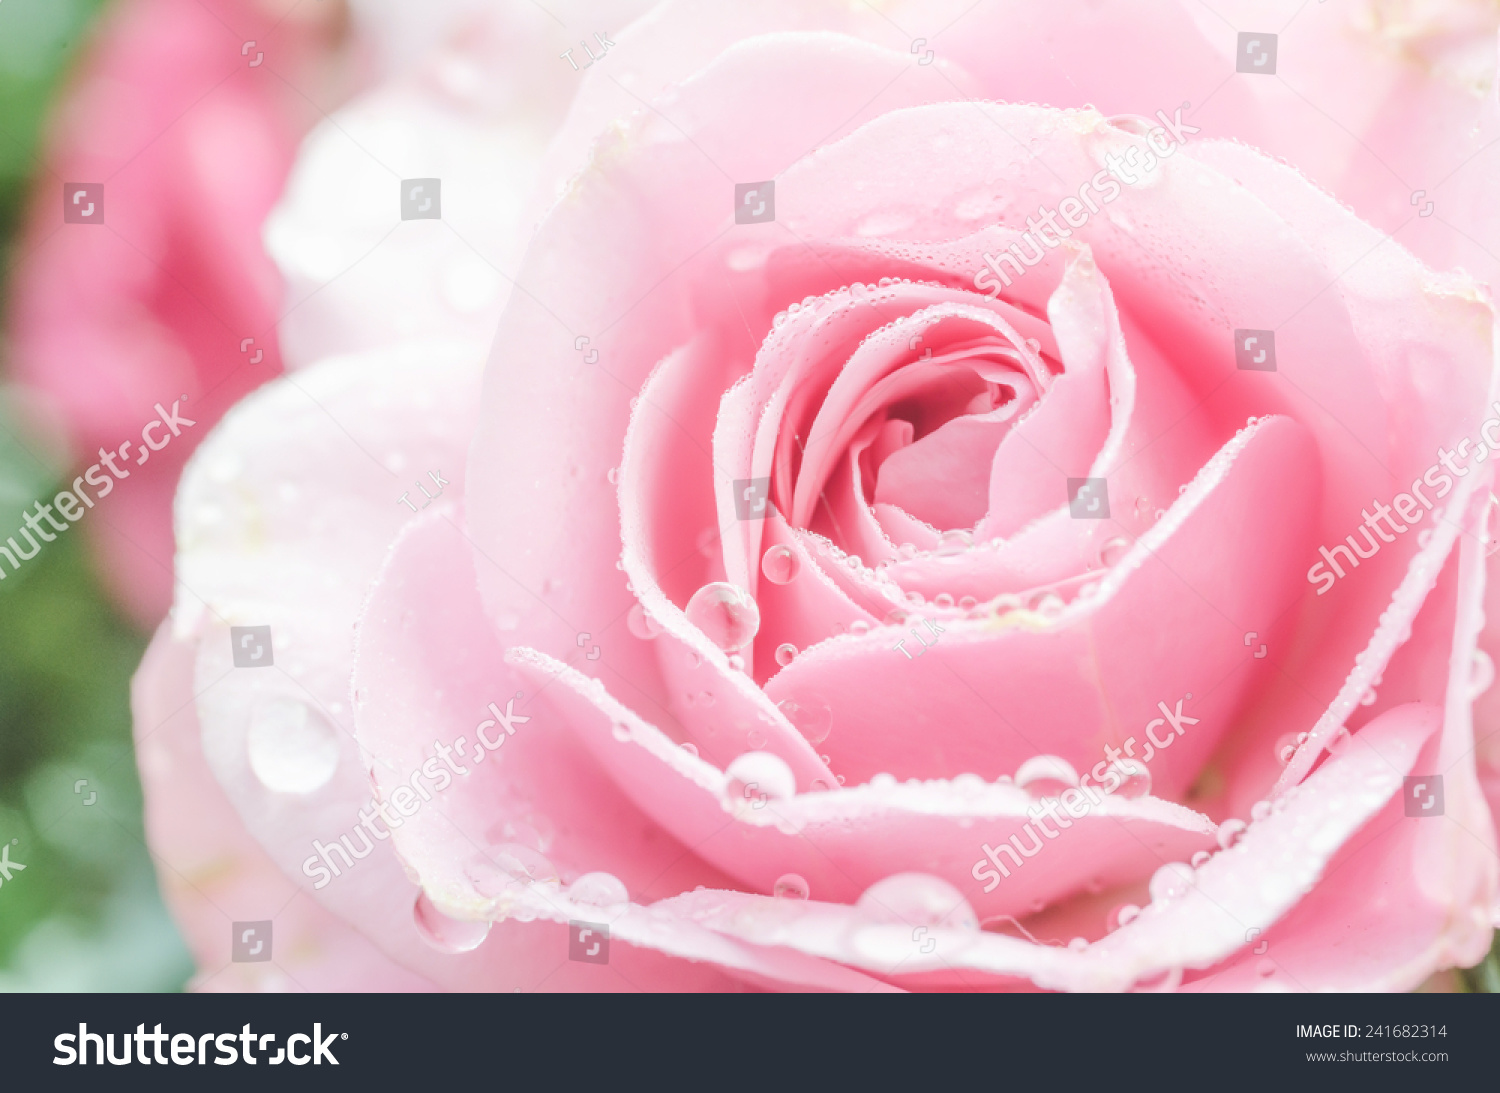 Close up pink rose is so a beautiful ez canvas id 241682314 izmirmasajfo